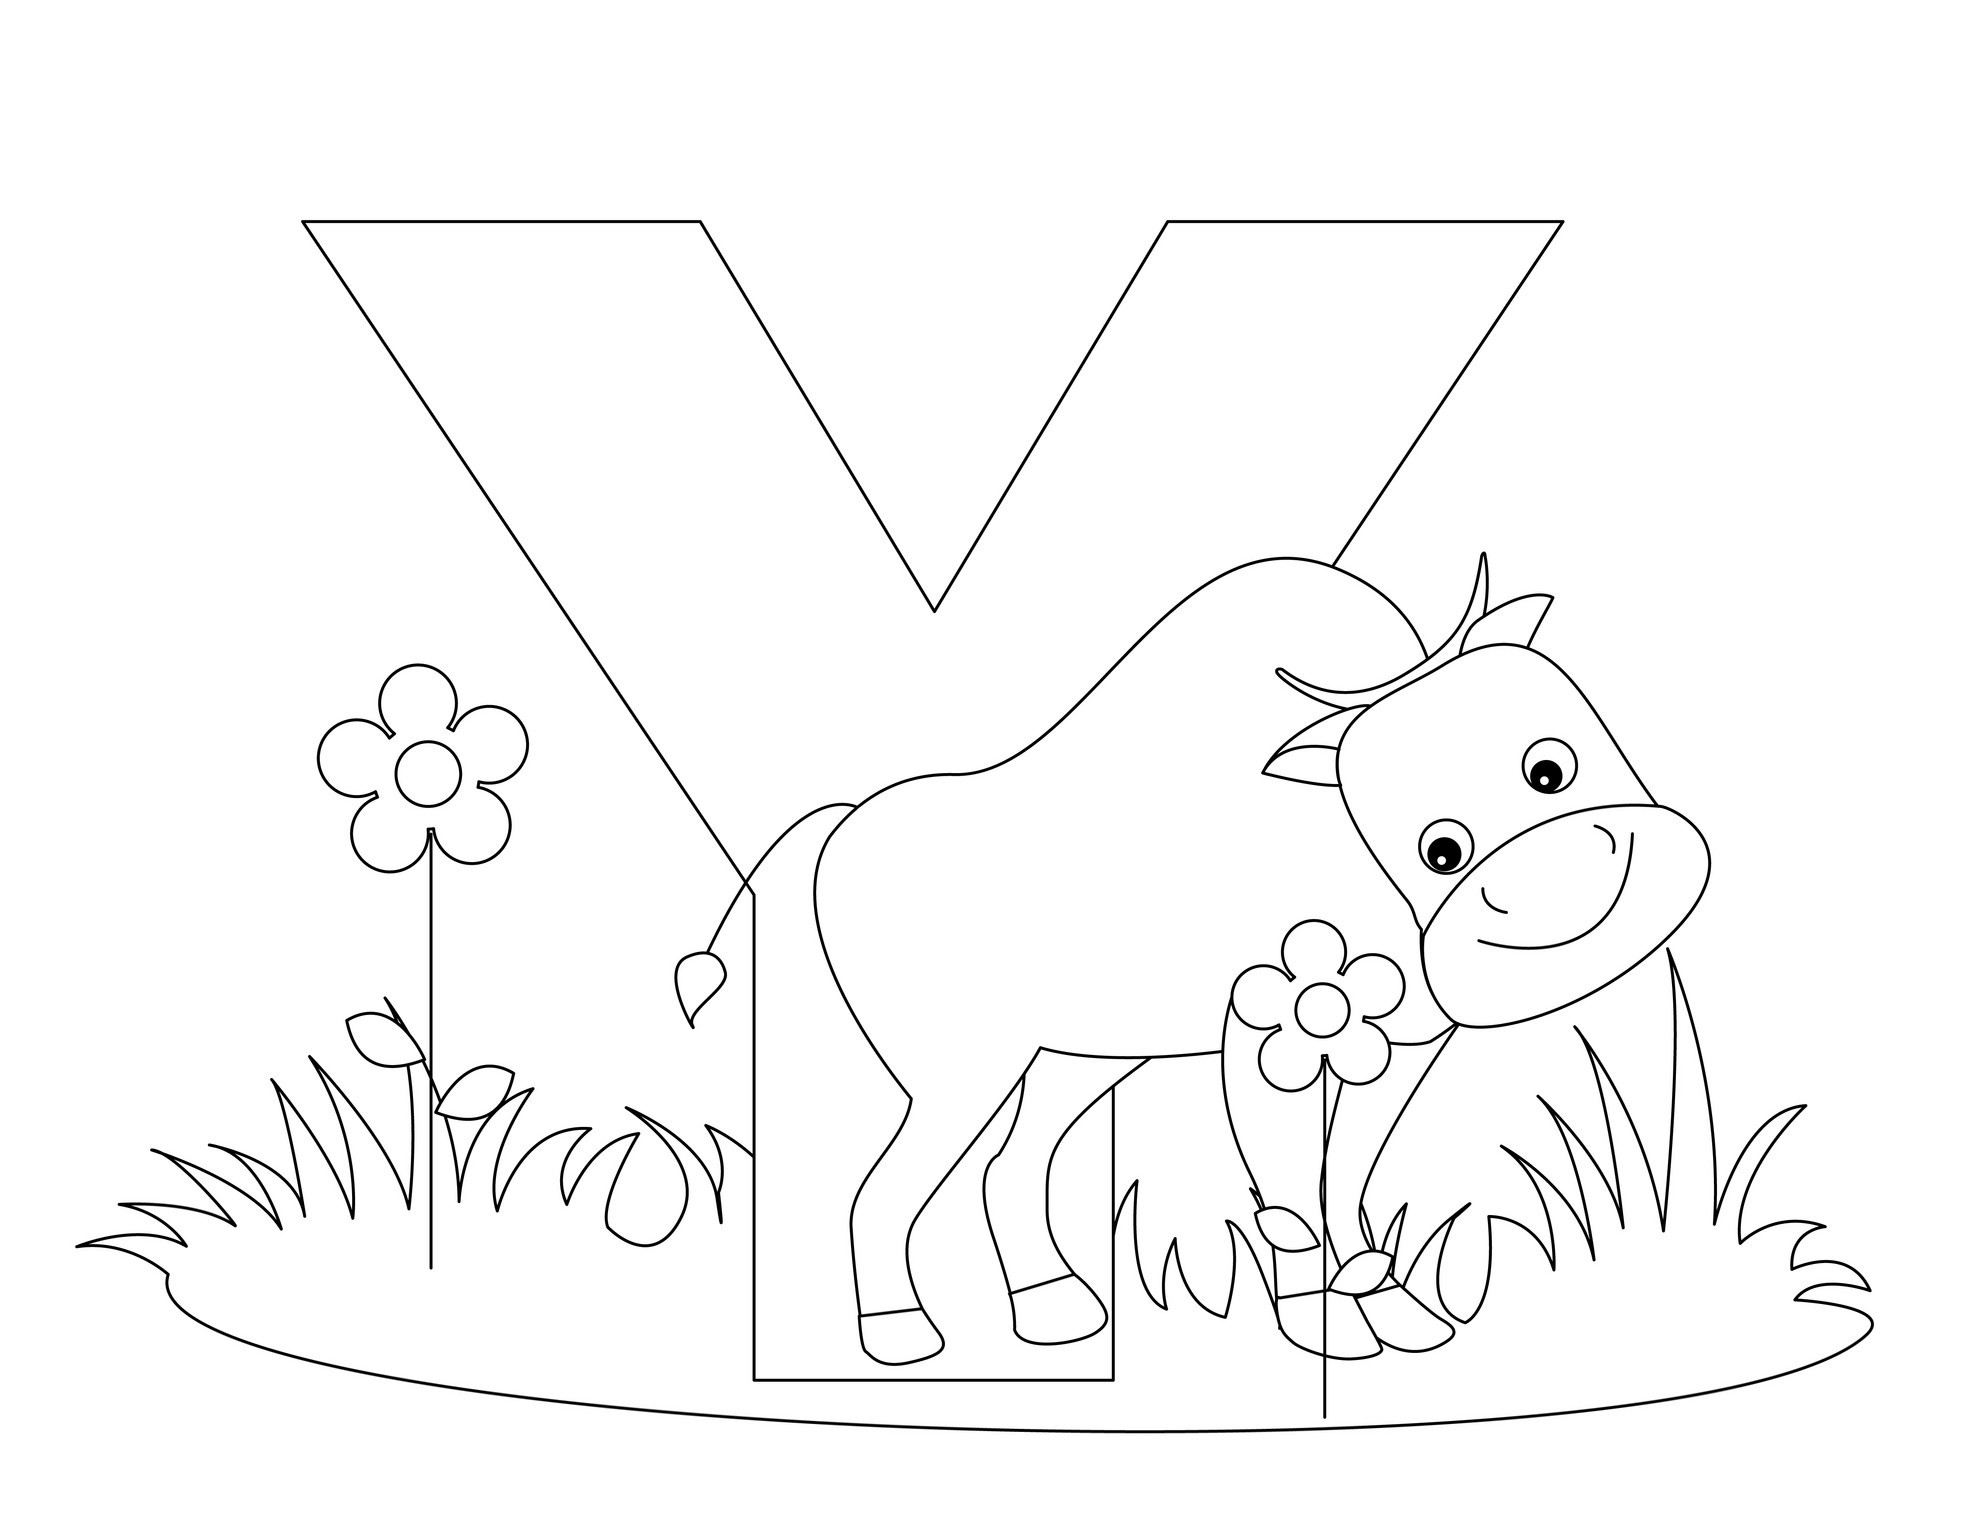 coloring sheet y things that start with the letter y levelings coloring sheet y